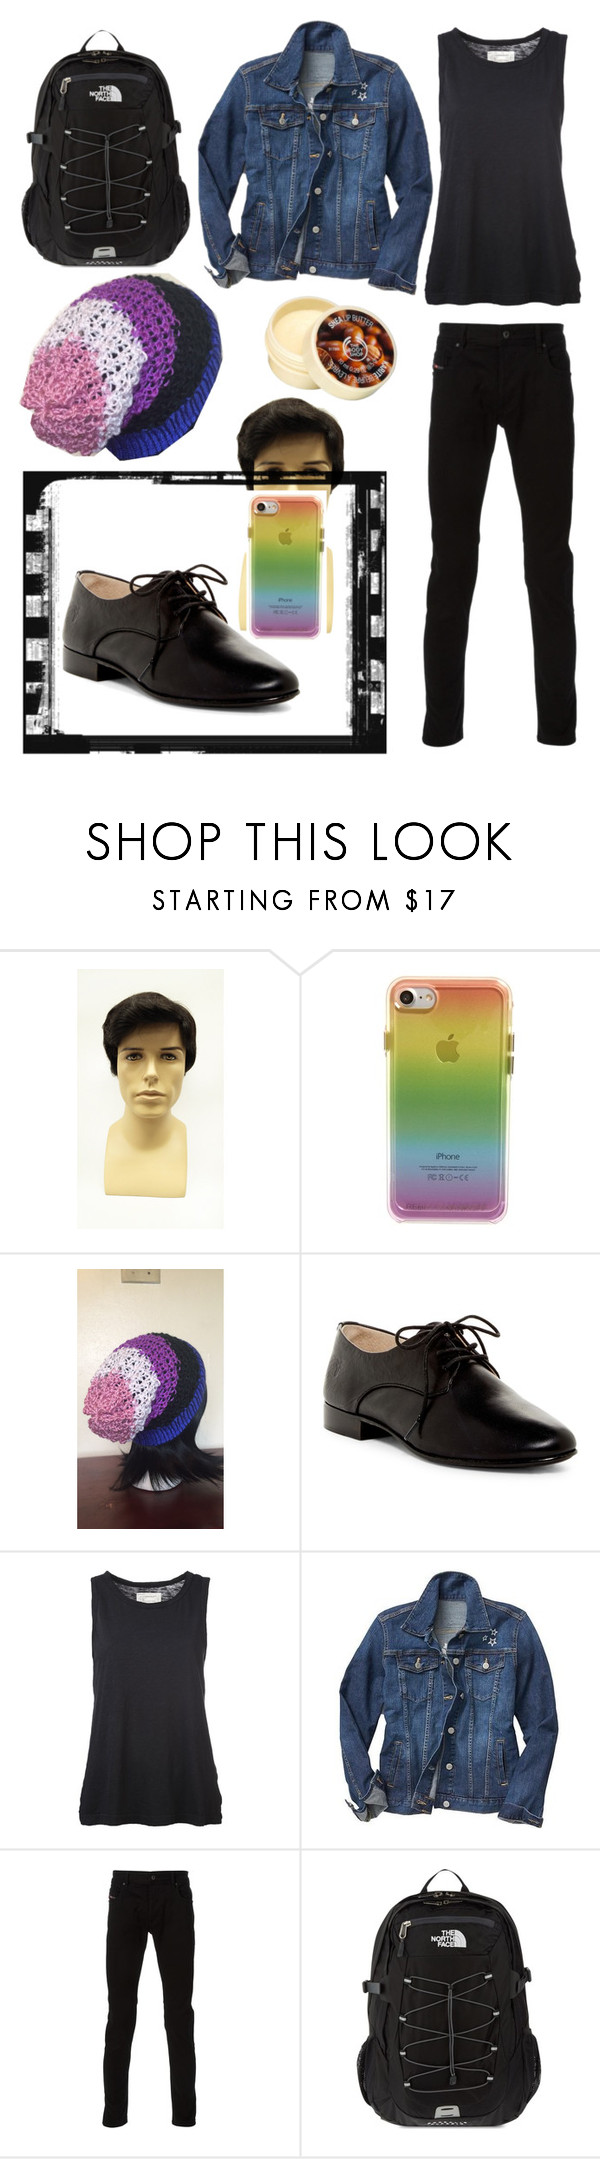 """""""Genderfluid FTW"""" by idabuzzer ❤ liked on Polyvore featuring Rebecca Minkoff, Frye, Current/Elliott, Gap, Diesel, The North Face and The Body Shop"""